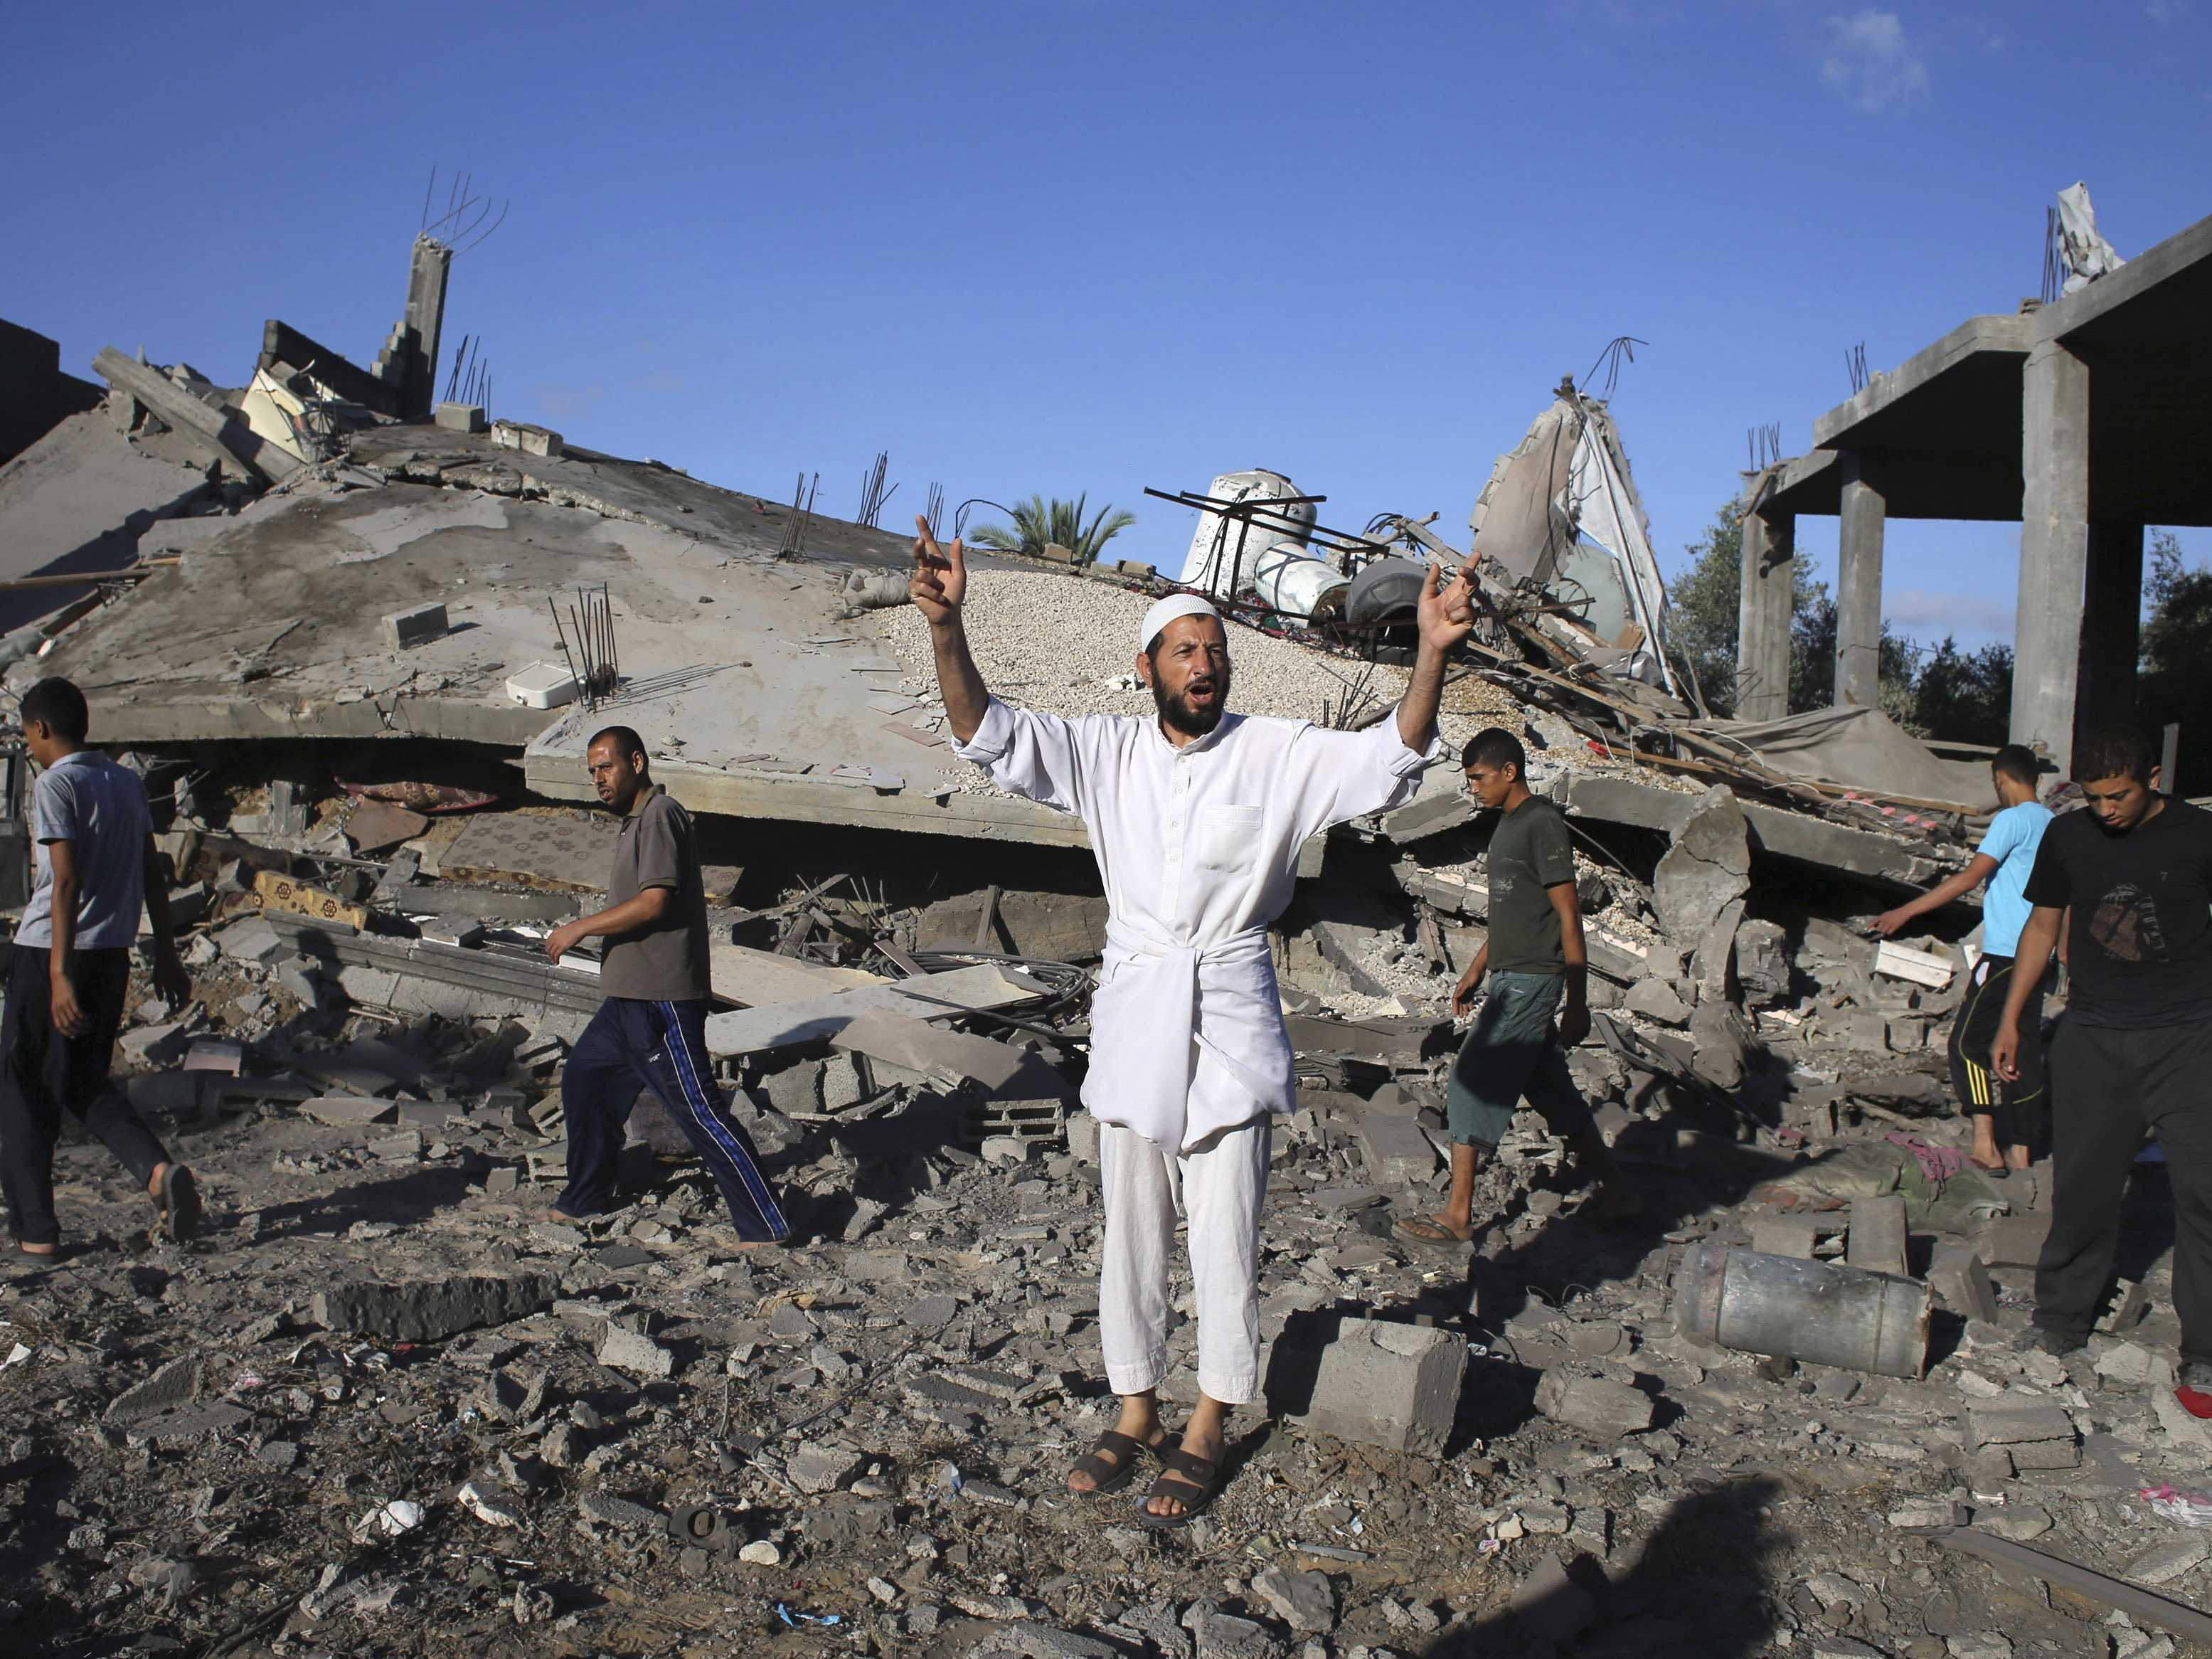 most-gaza-civilians-reject-hamas-policies-while-facing-israeli-bombs